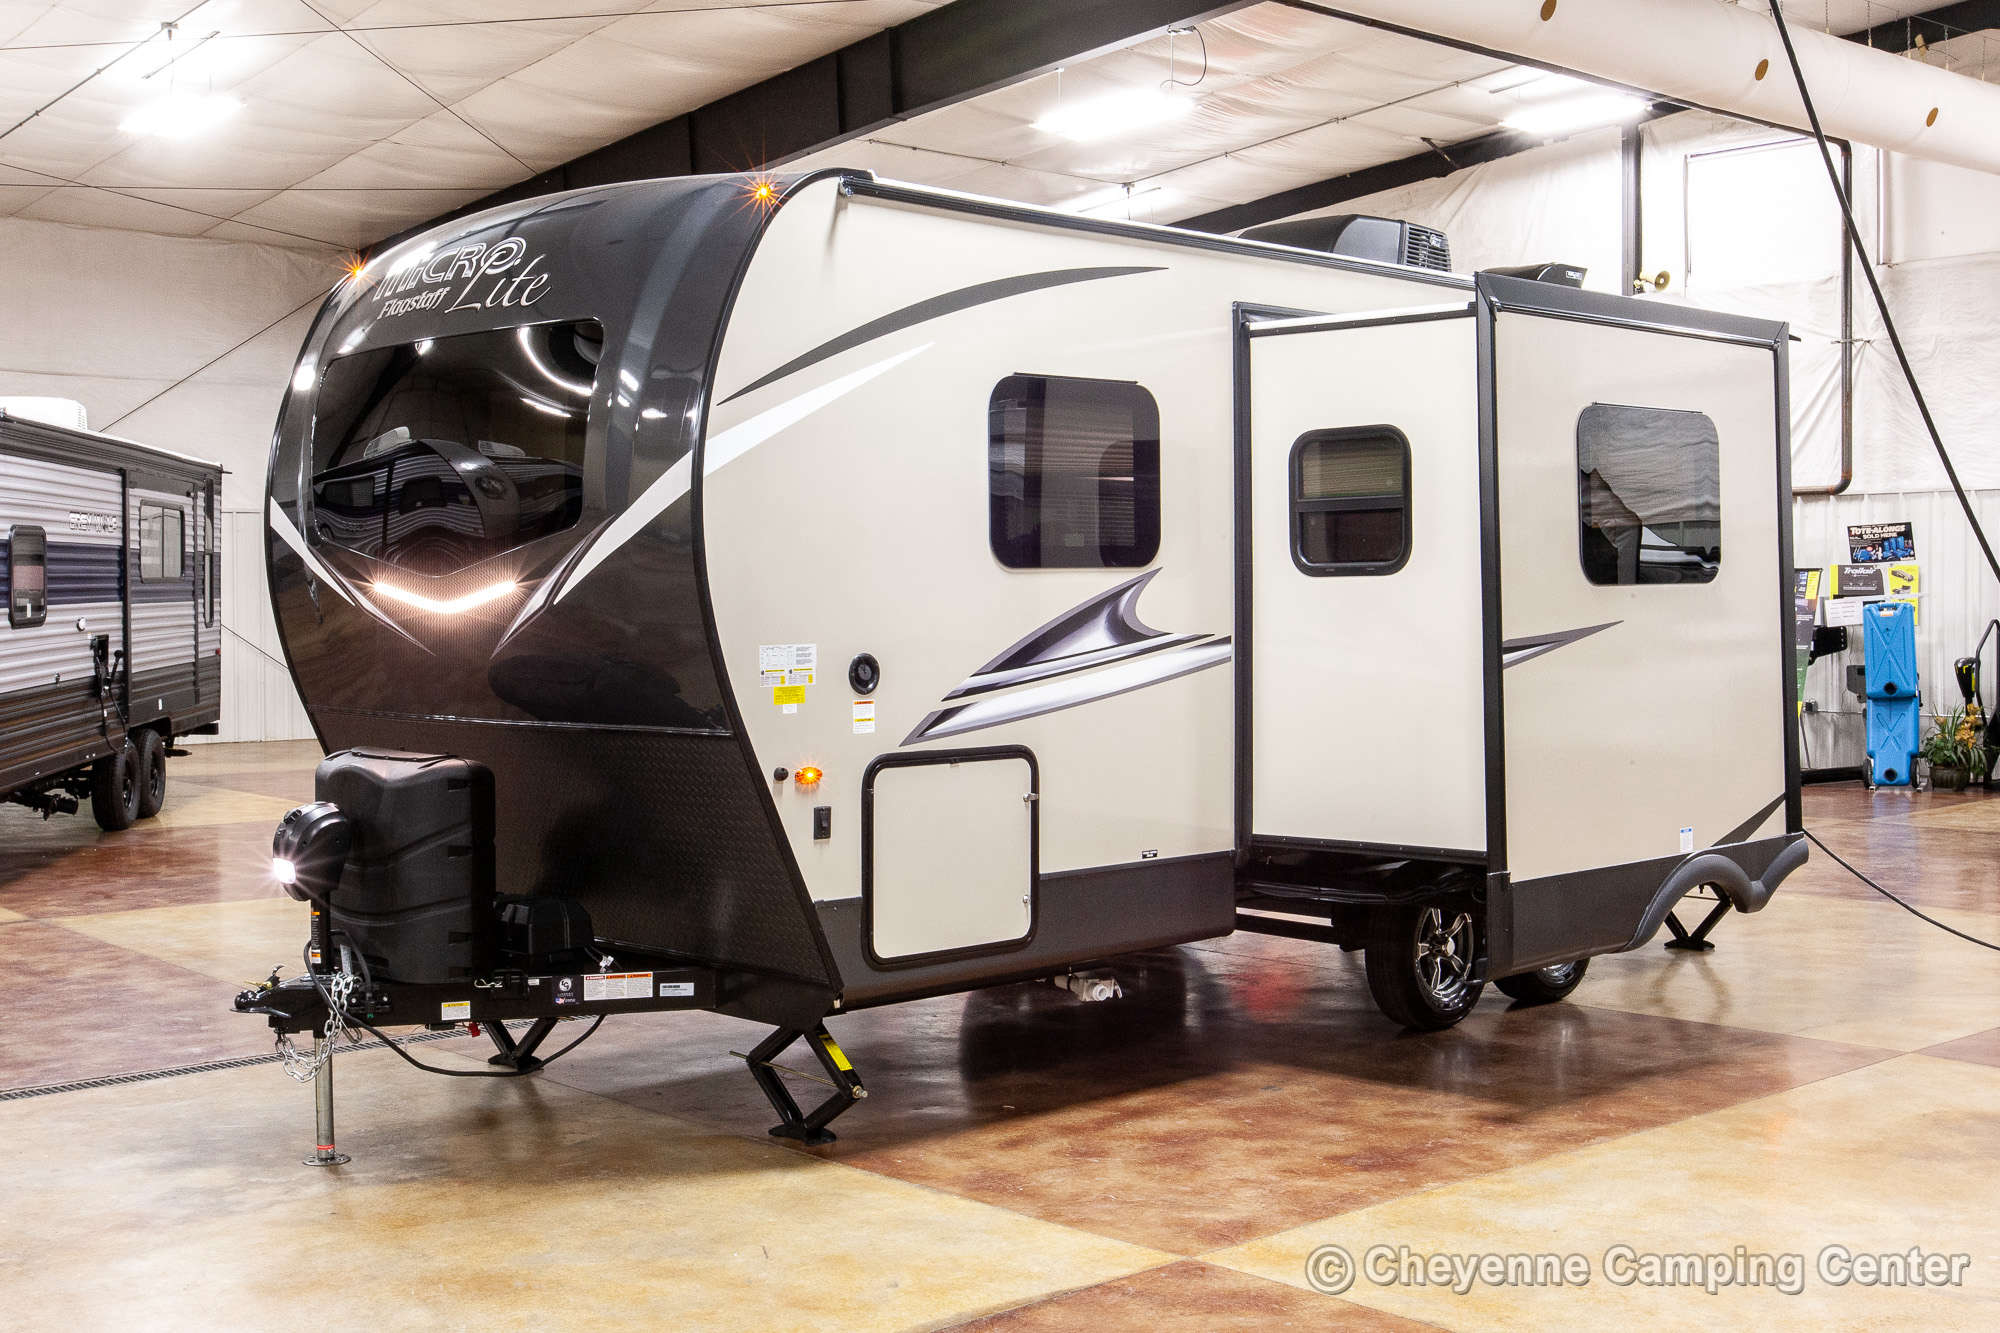 2022 Forest River Flagstaff Micro Lite 22FBS Travel Trailer Exterior Image